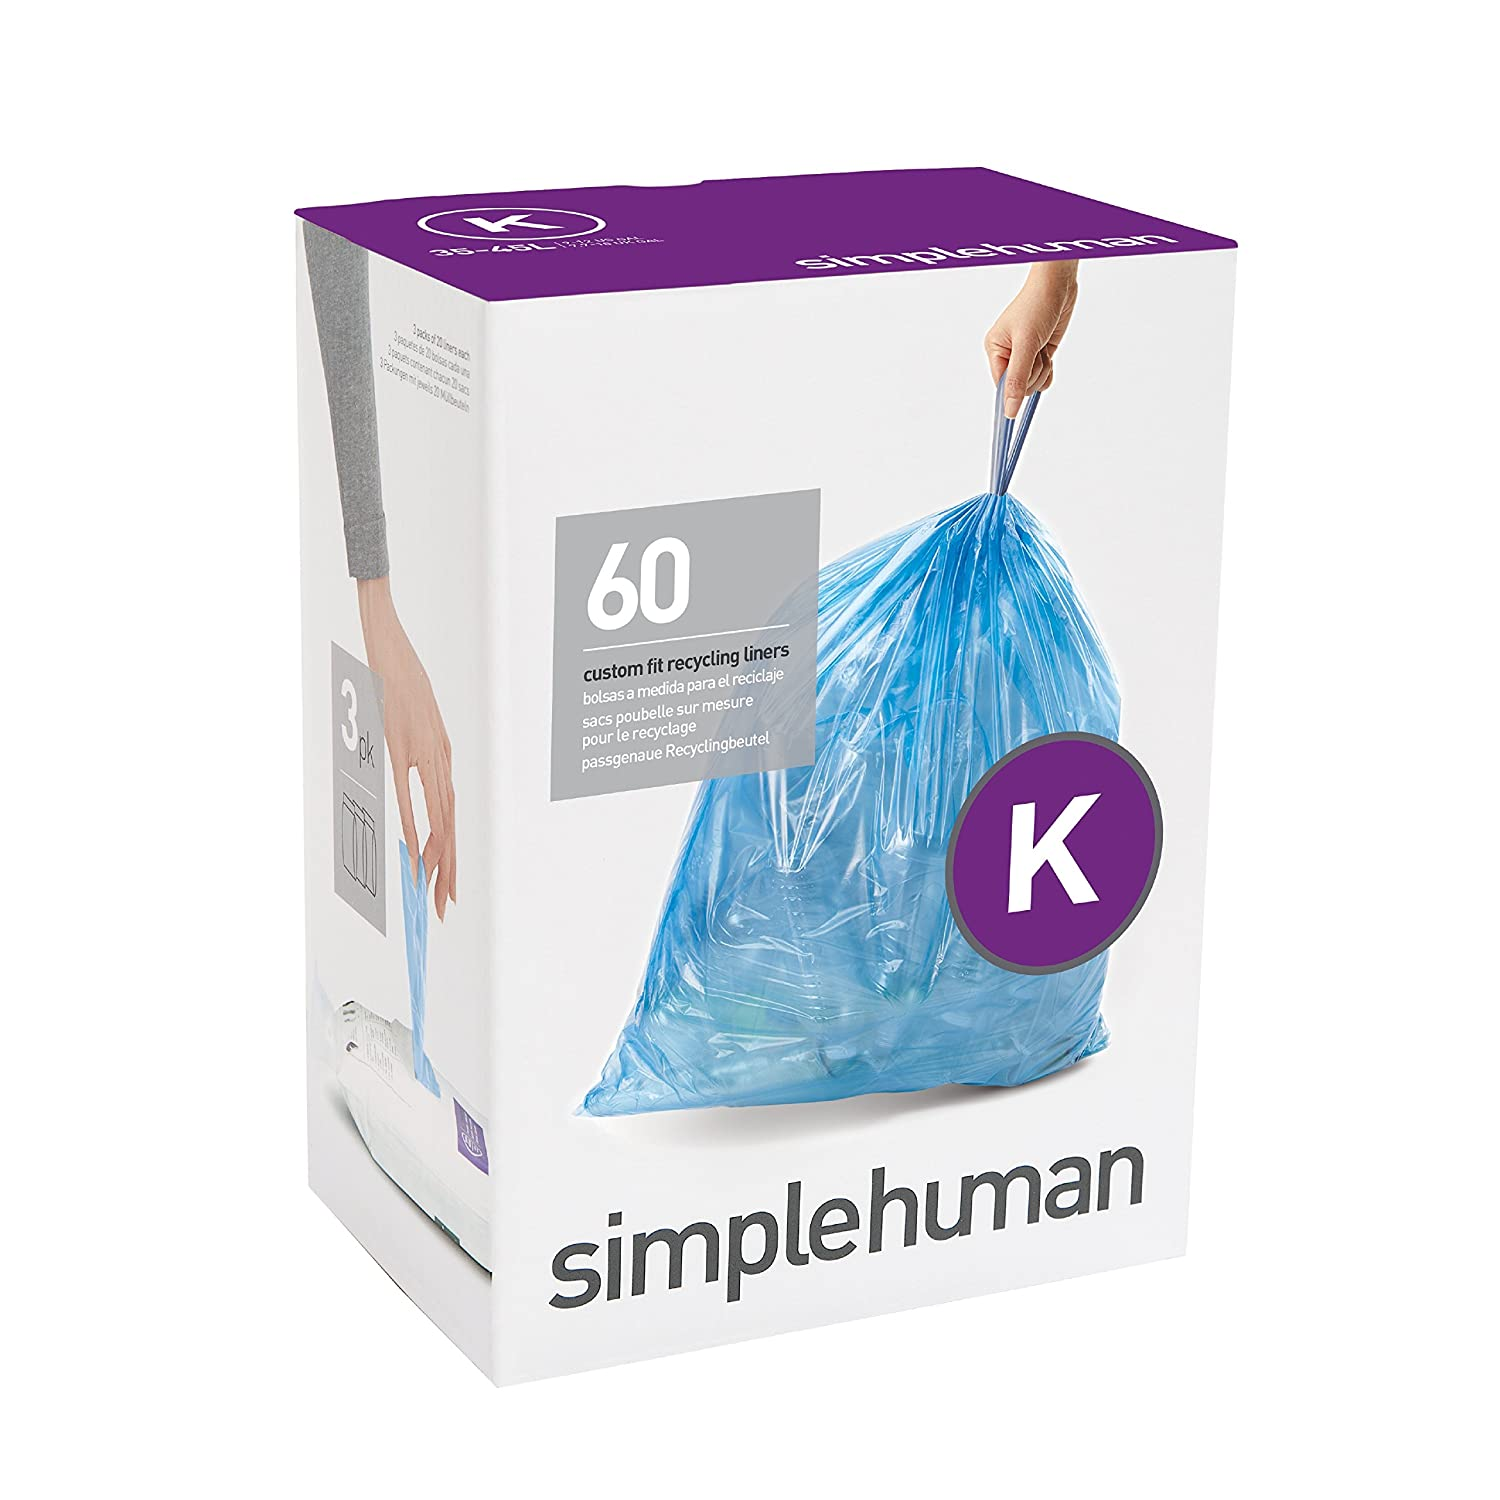 Amazon.com: simplehuman Code K Custom Fit Recycling Liners, Tall ...